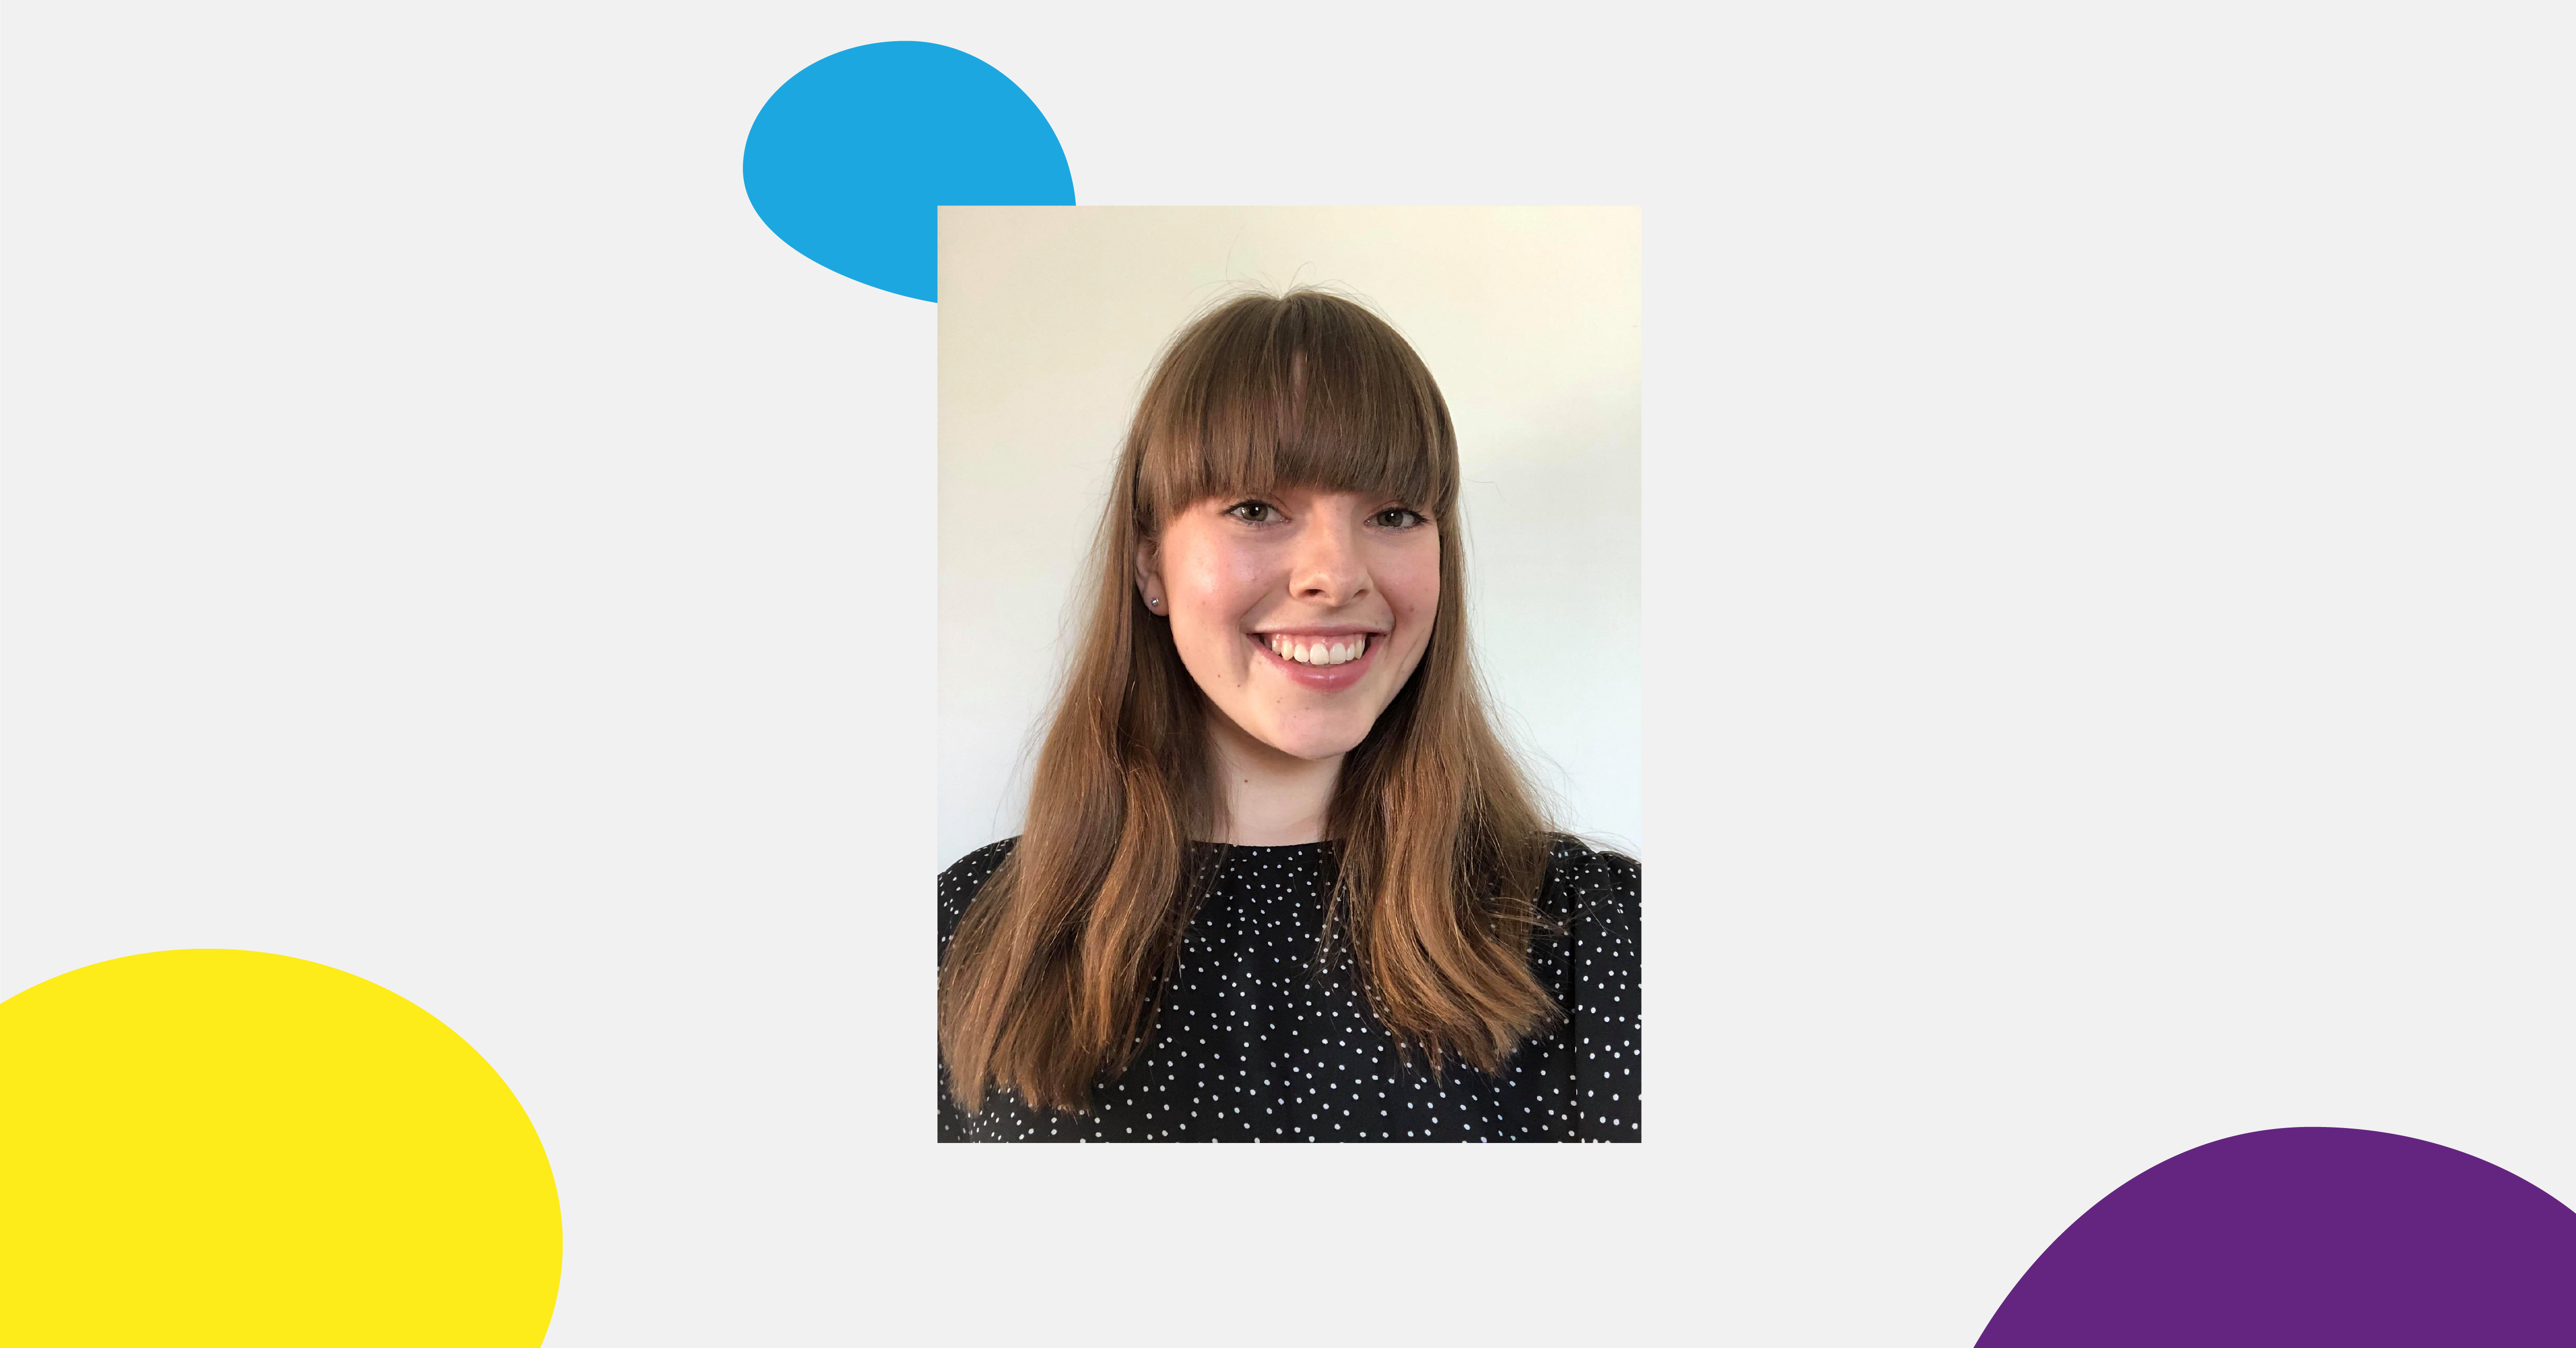 Welcome to the team, Katie!